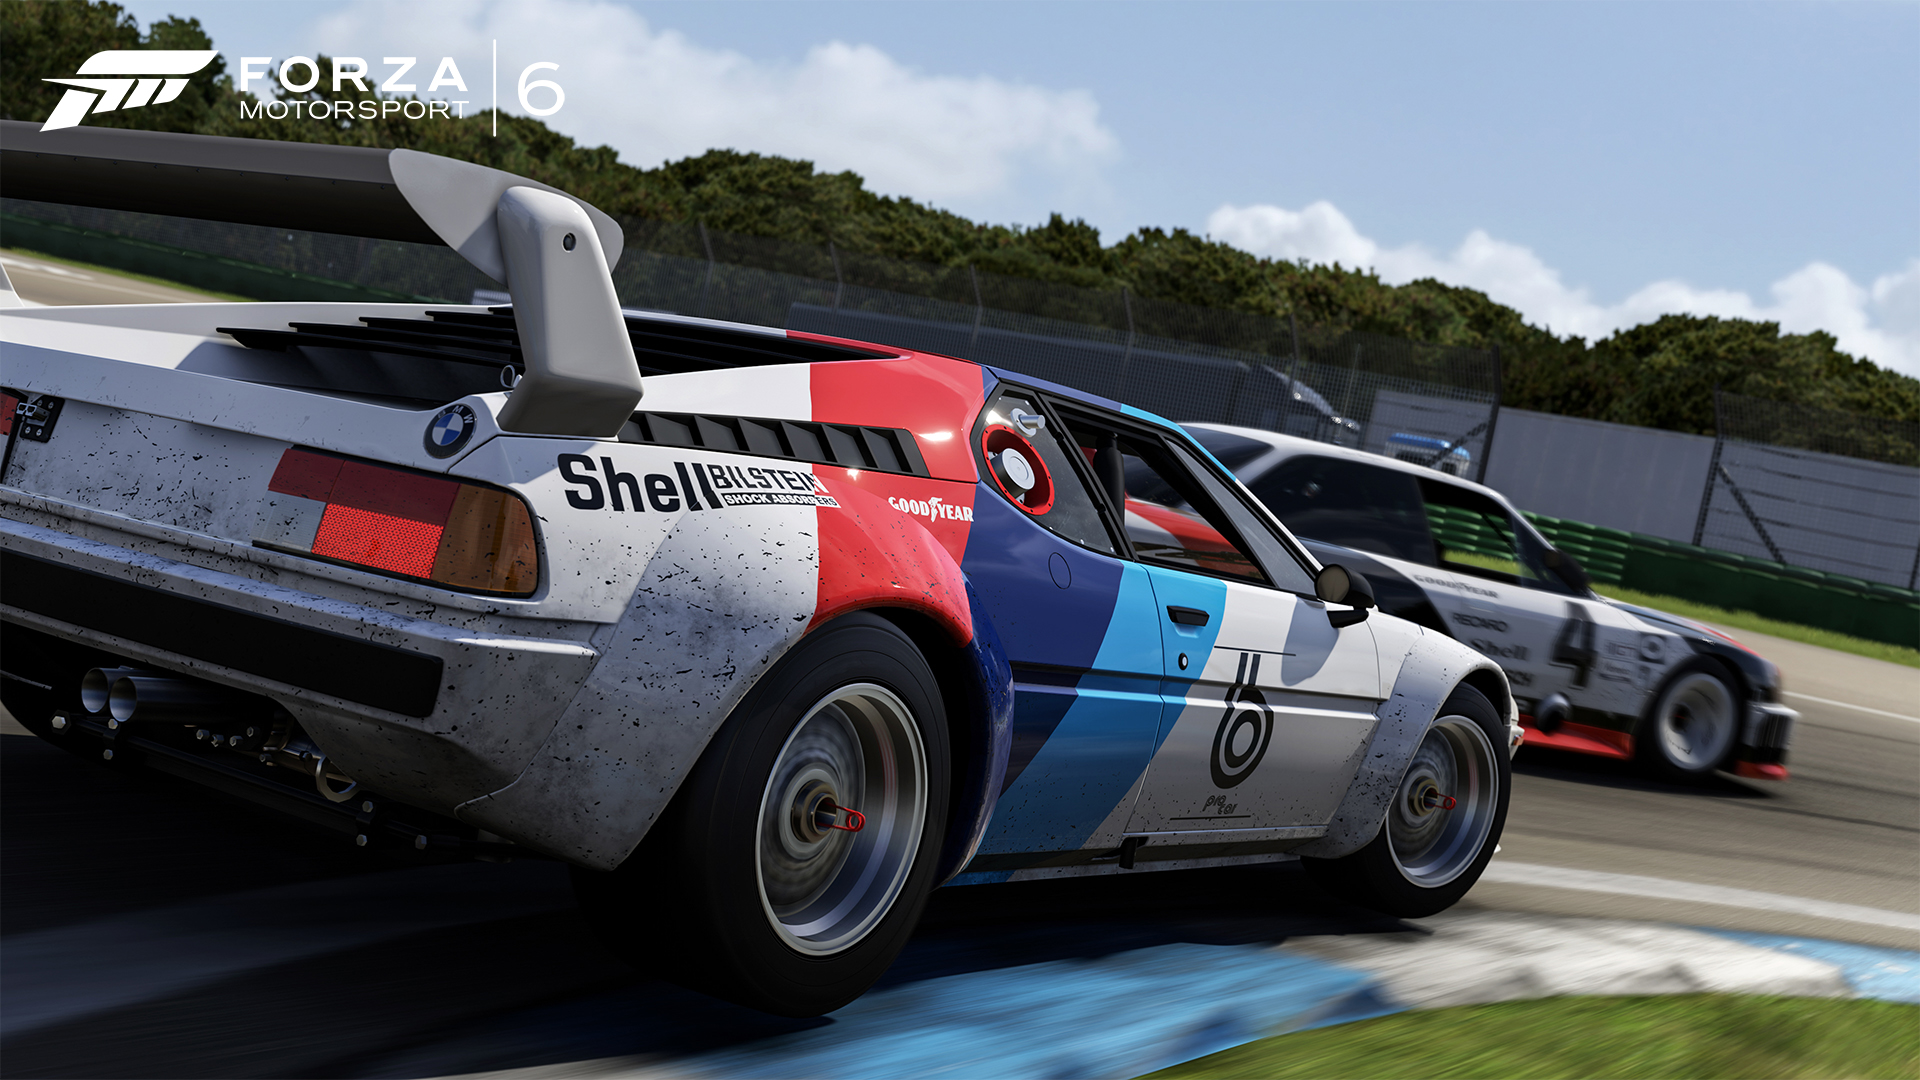 Forza 6 Driving Guide Assists Walkthrough And Car List